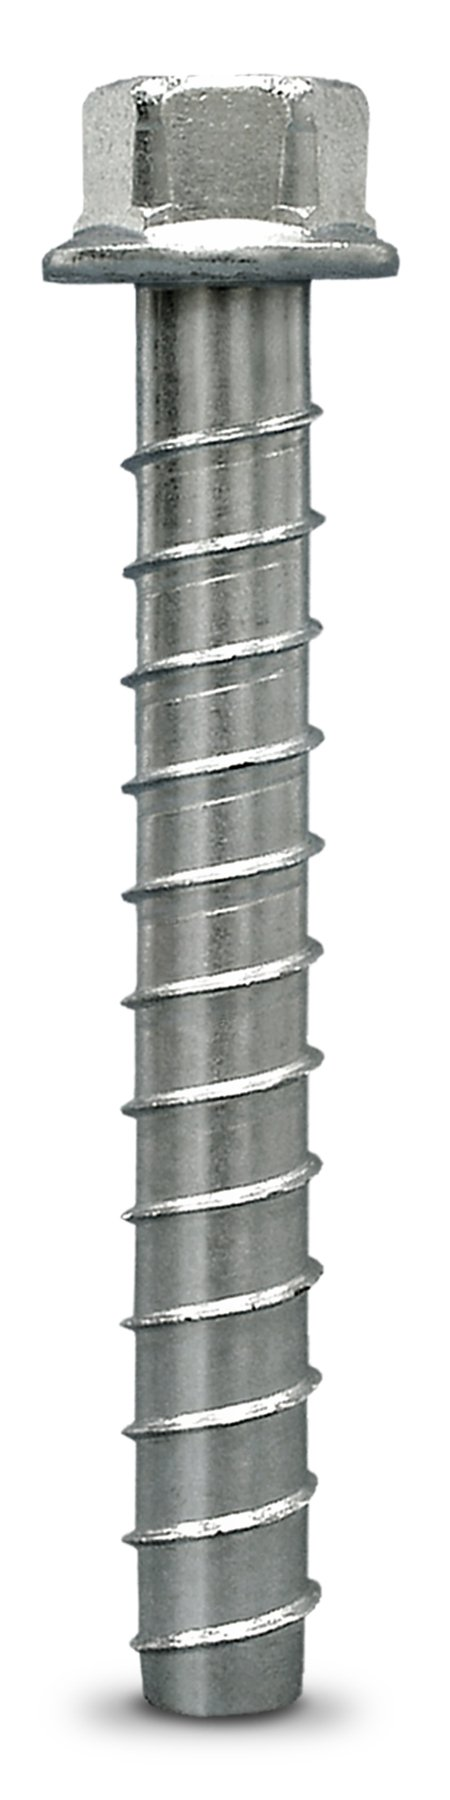 Simpson Strong Tie THD50500H 1/2-Inch by 5-Inch Titen HD Zinc Plated Heavy Duty Screw Anchor for Concrete/Masonry, 20 per Pack